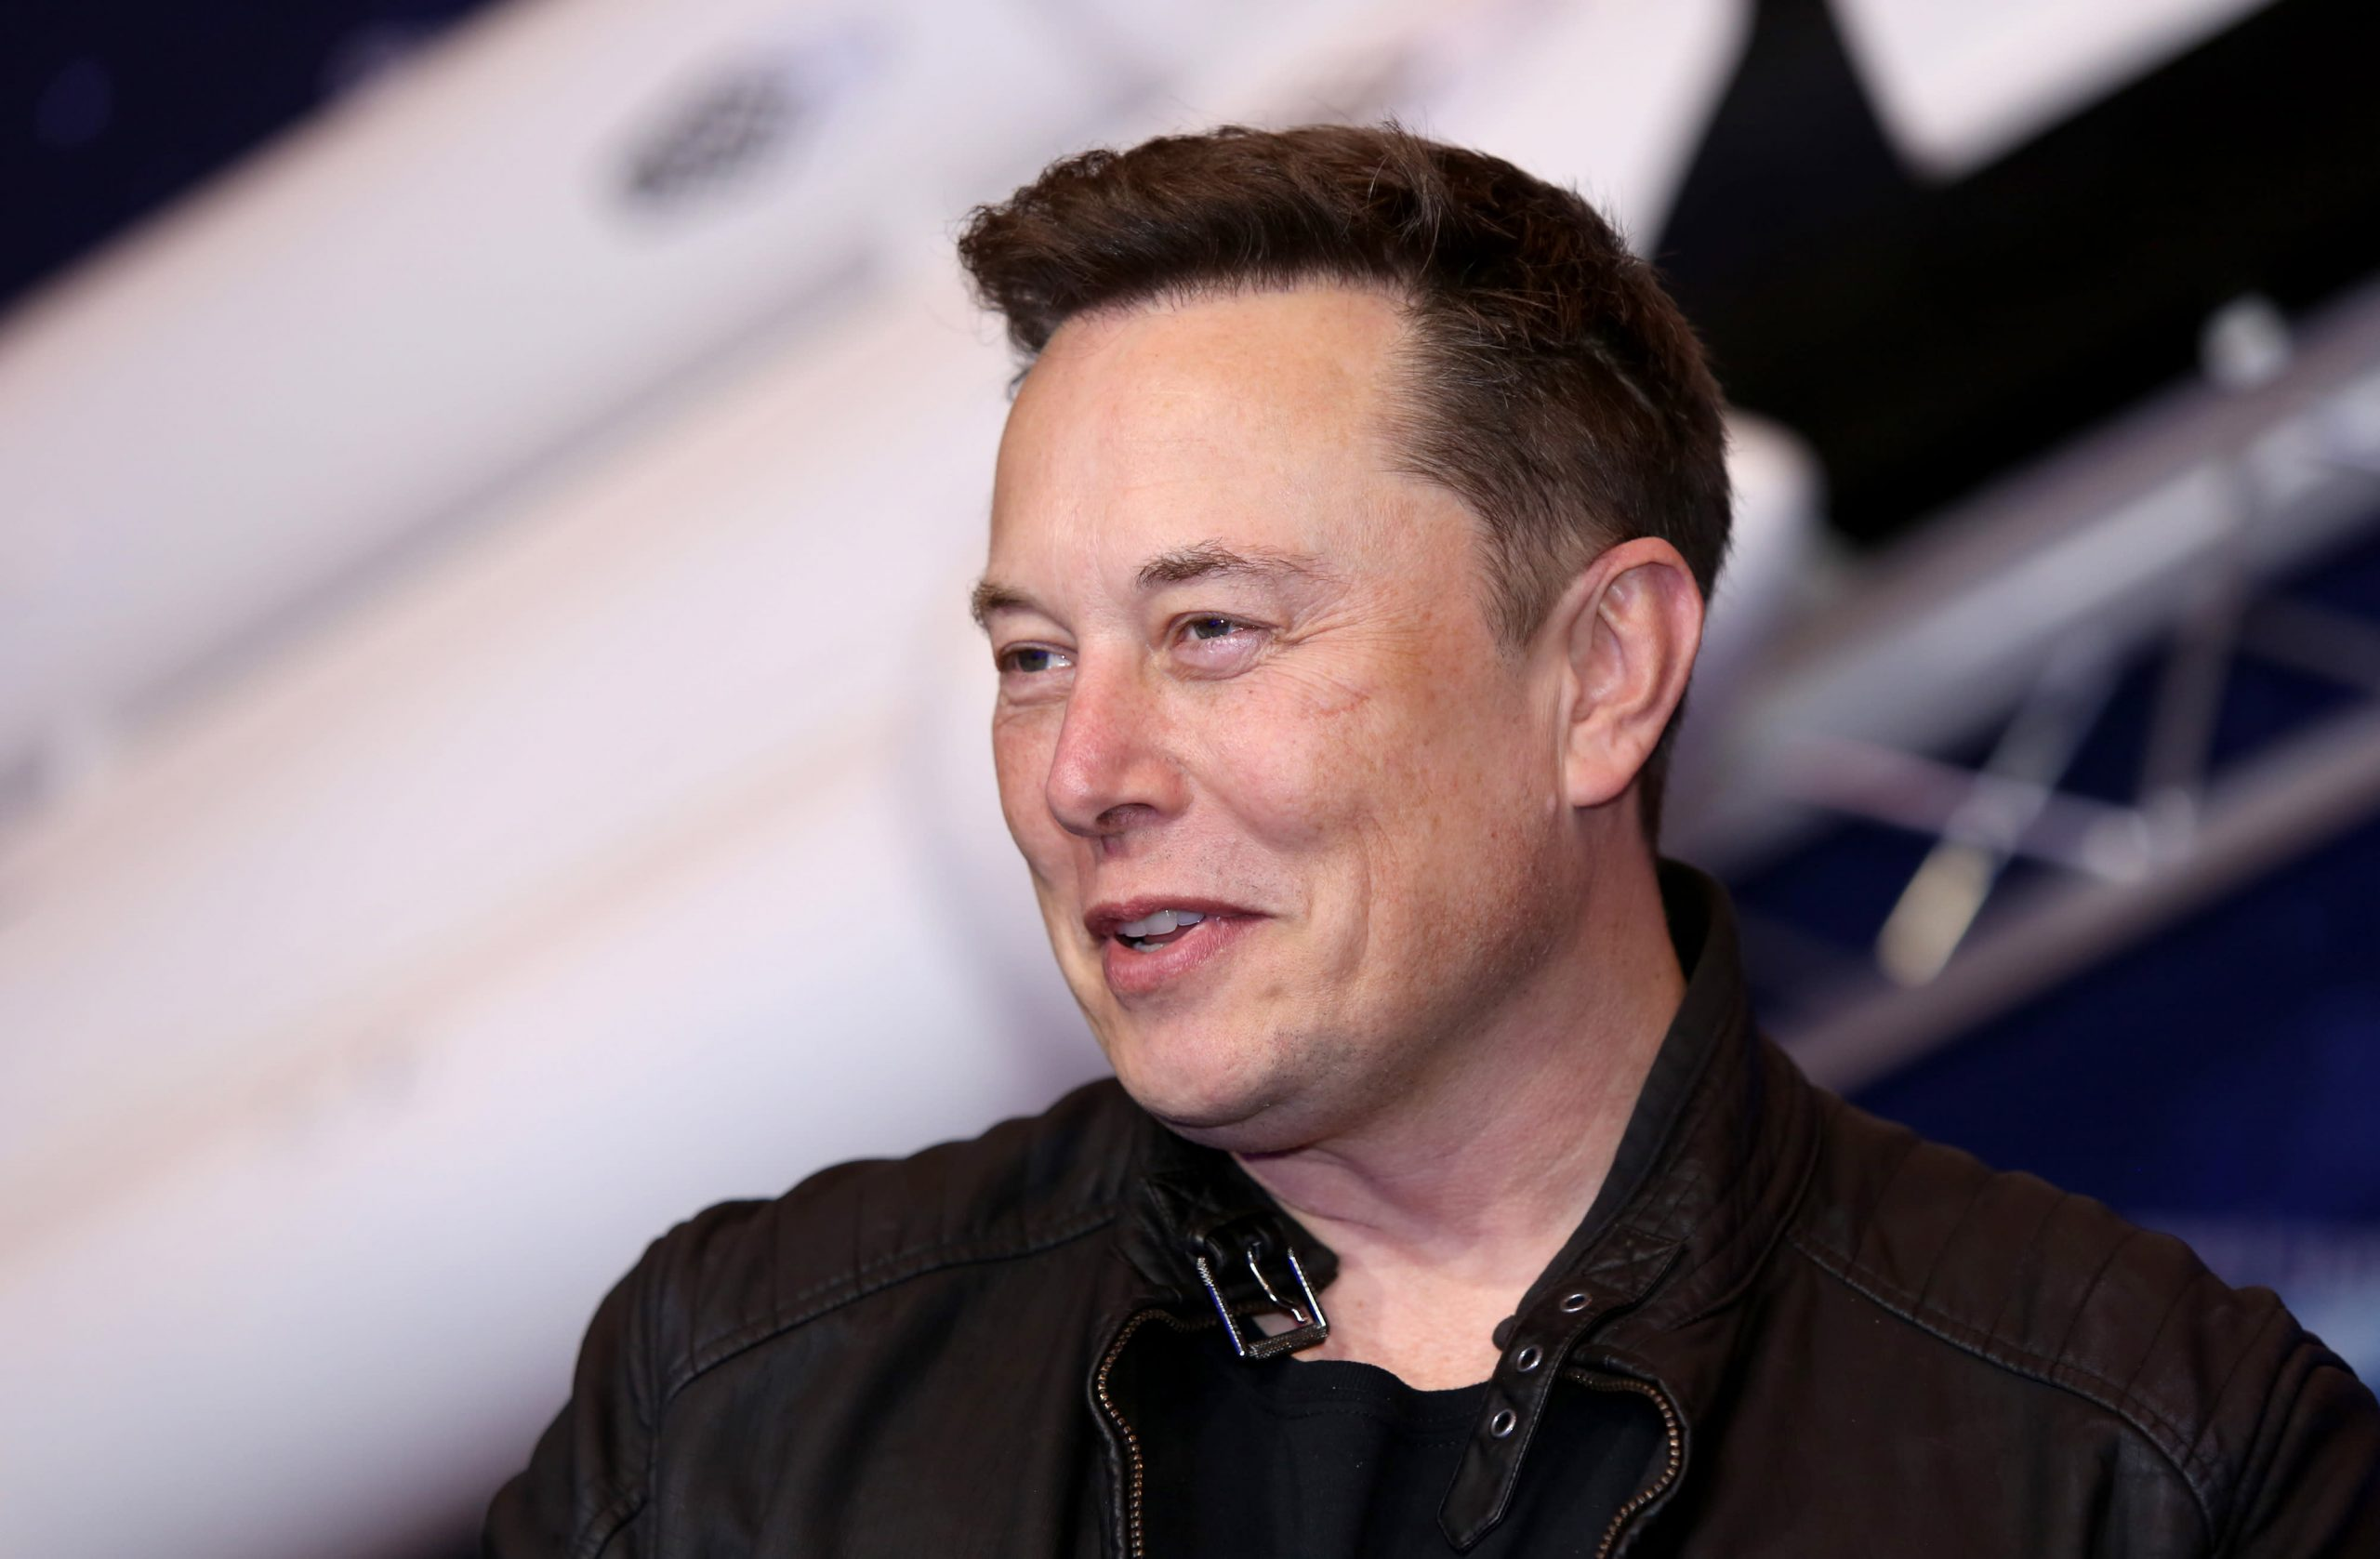 Tesla closes day as fifth most valuable U.S. company, passing Facebook